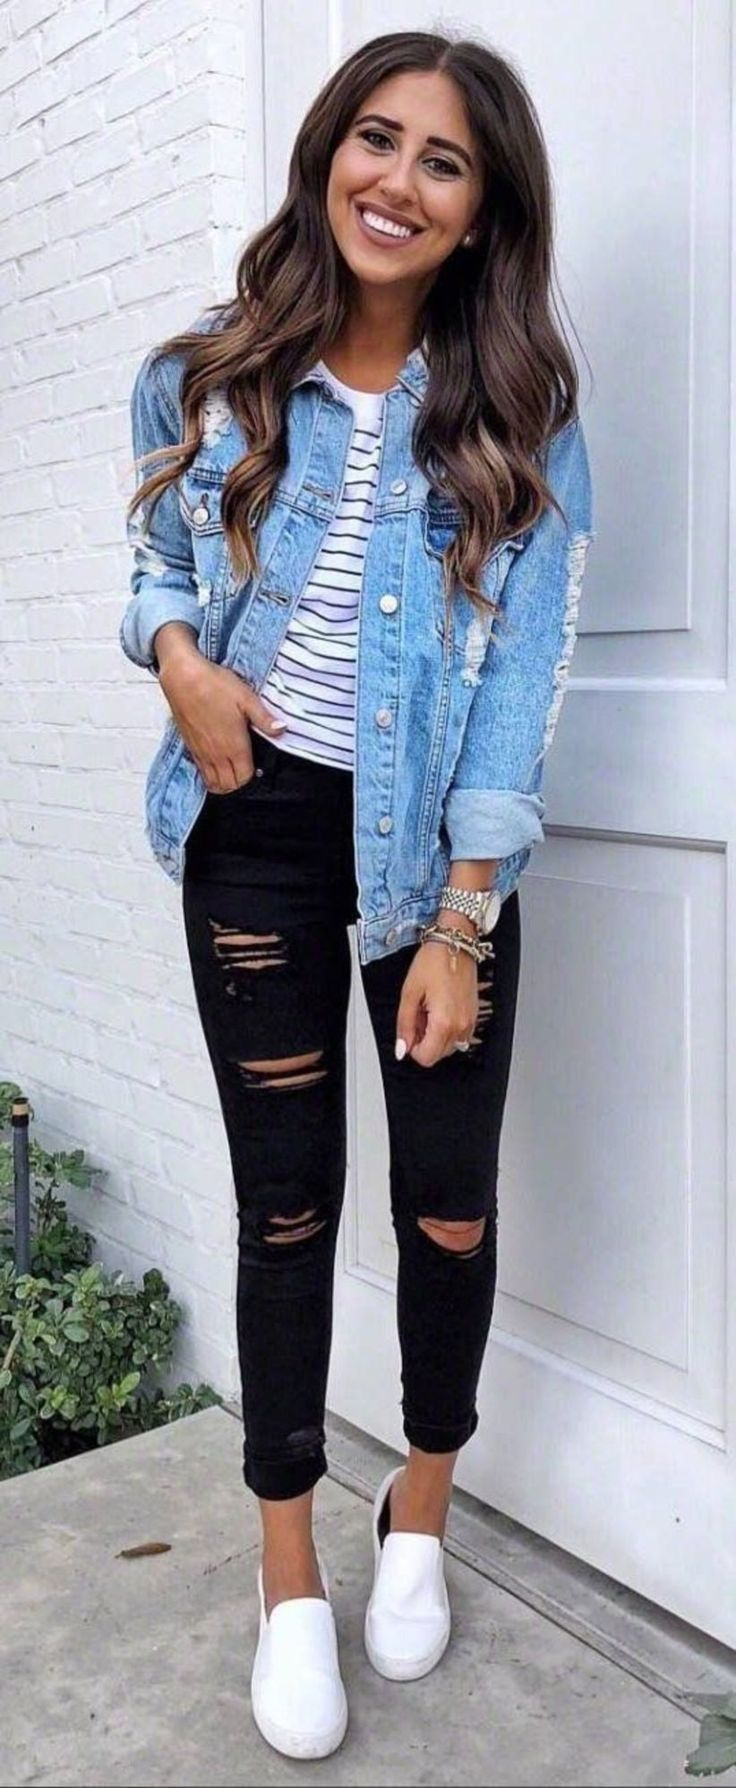 Style The Look Ripped Jeans Denim Jacket T Shirt Outfit